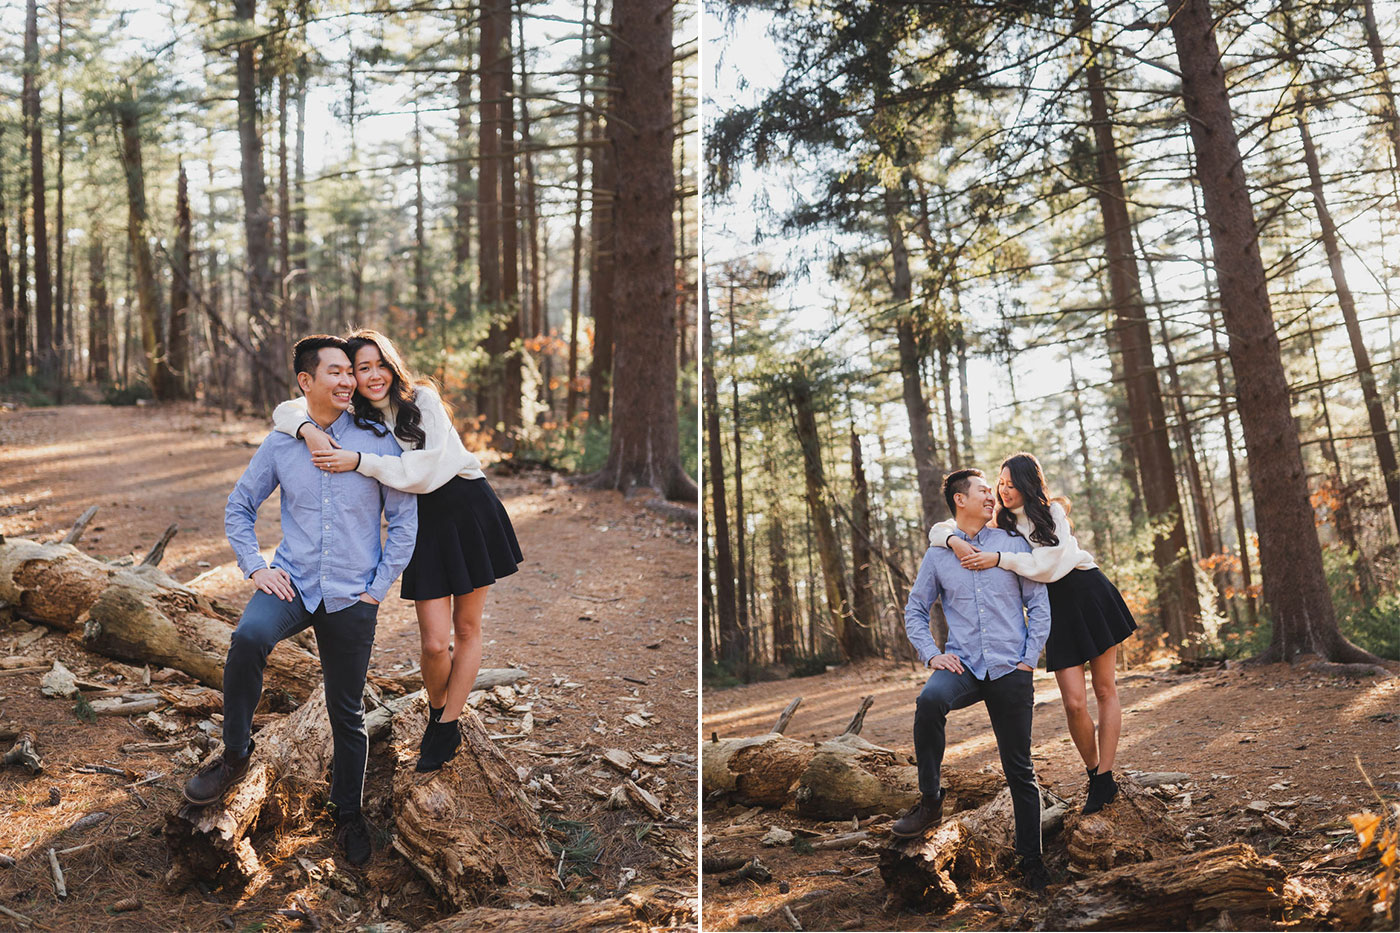 Engagement Session at Prosser Pines in Long Island by Hanel